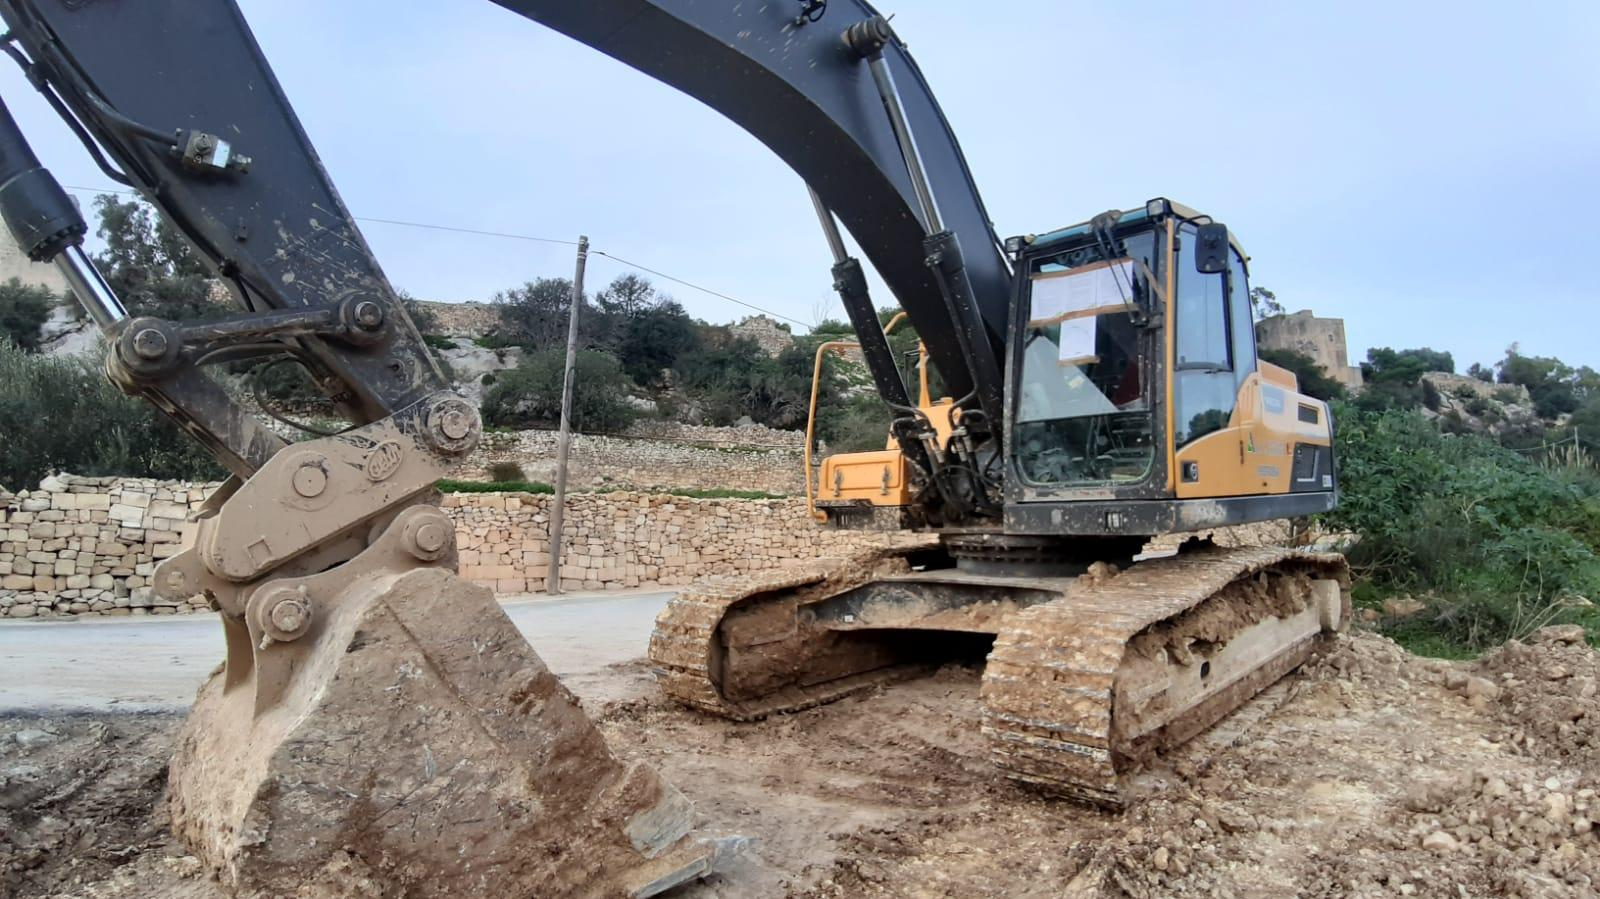 ERA's Stop and Comply Order affixed to the windscreen of an excavator on site